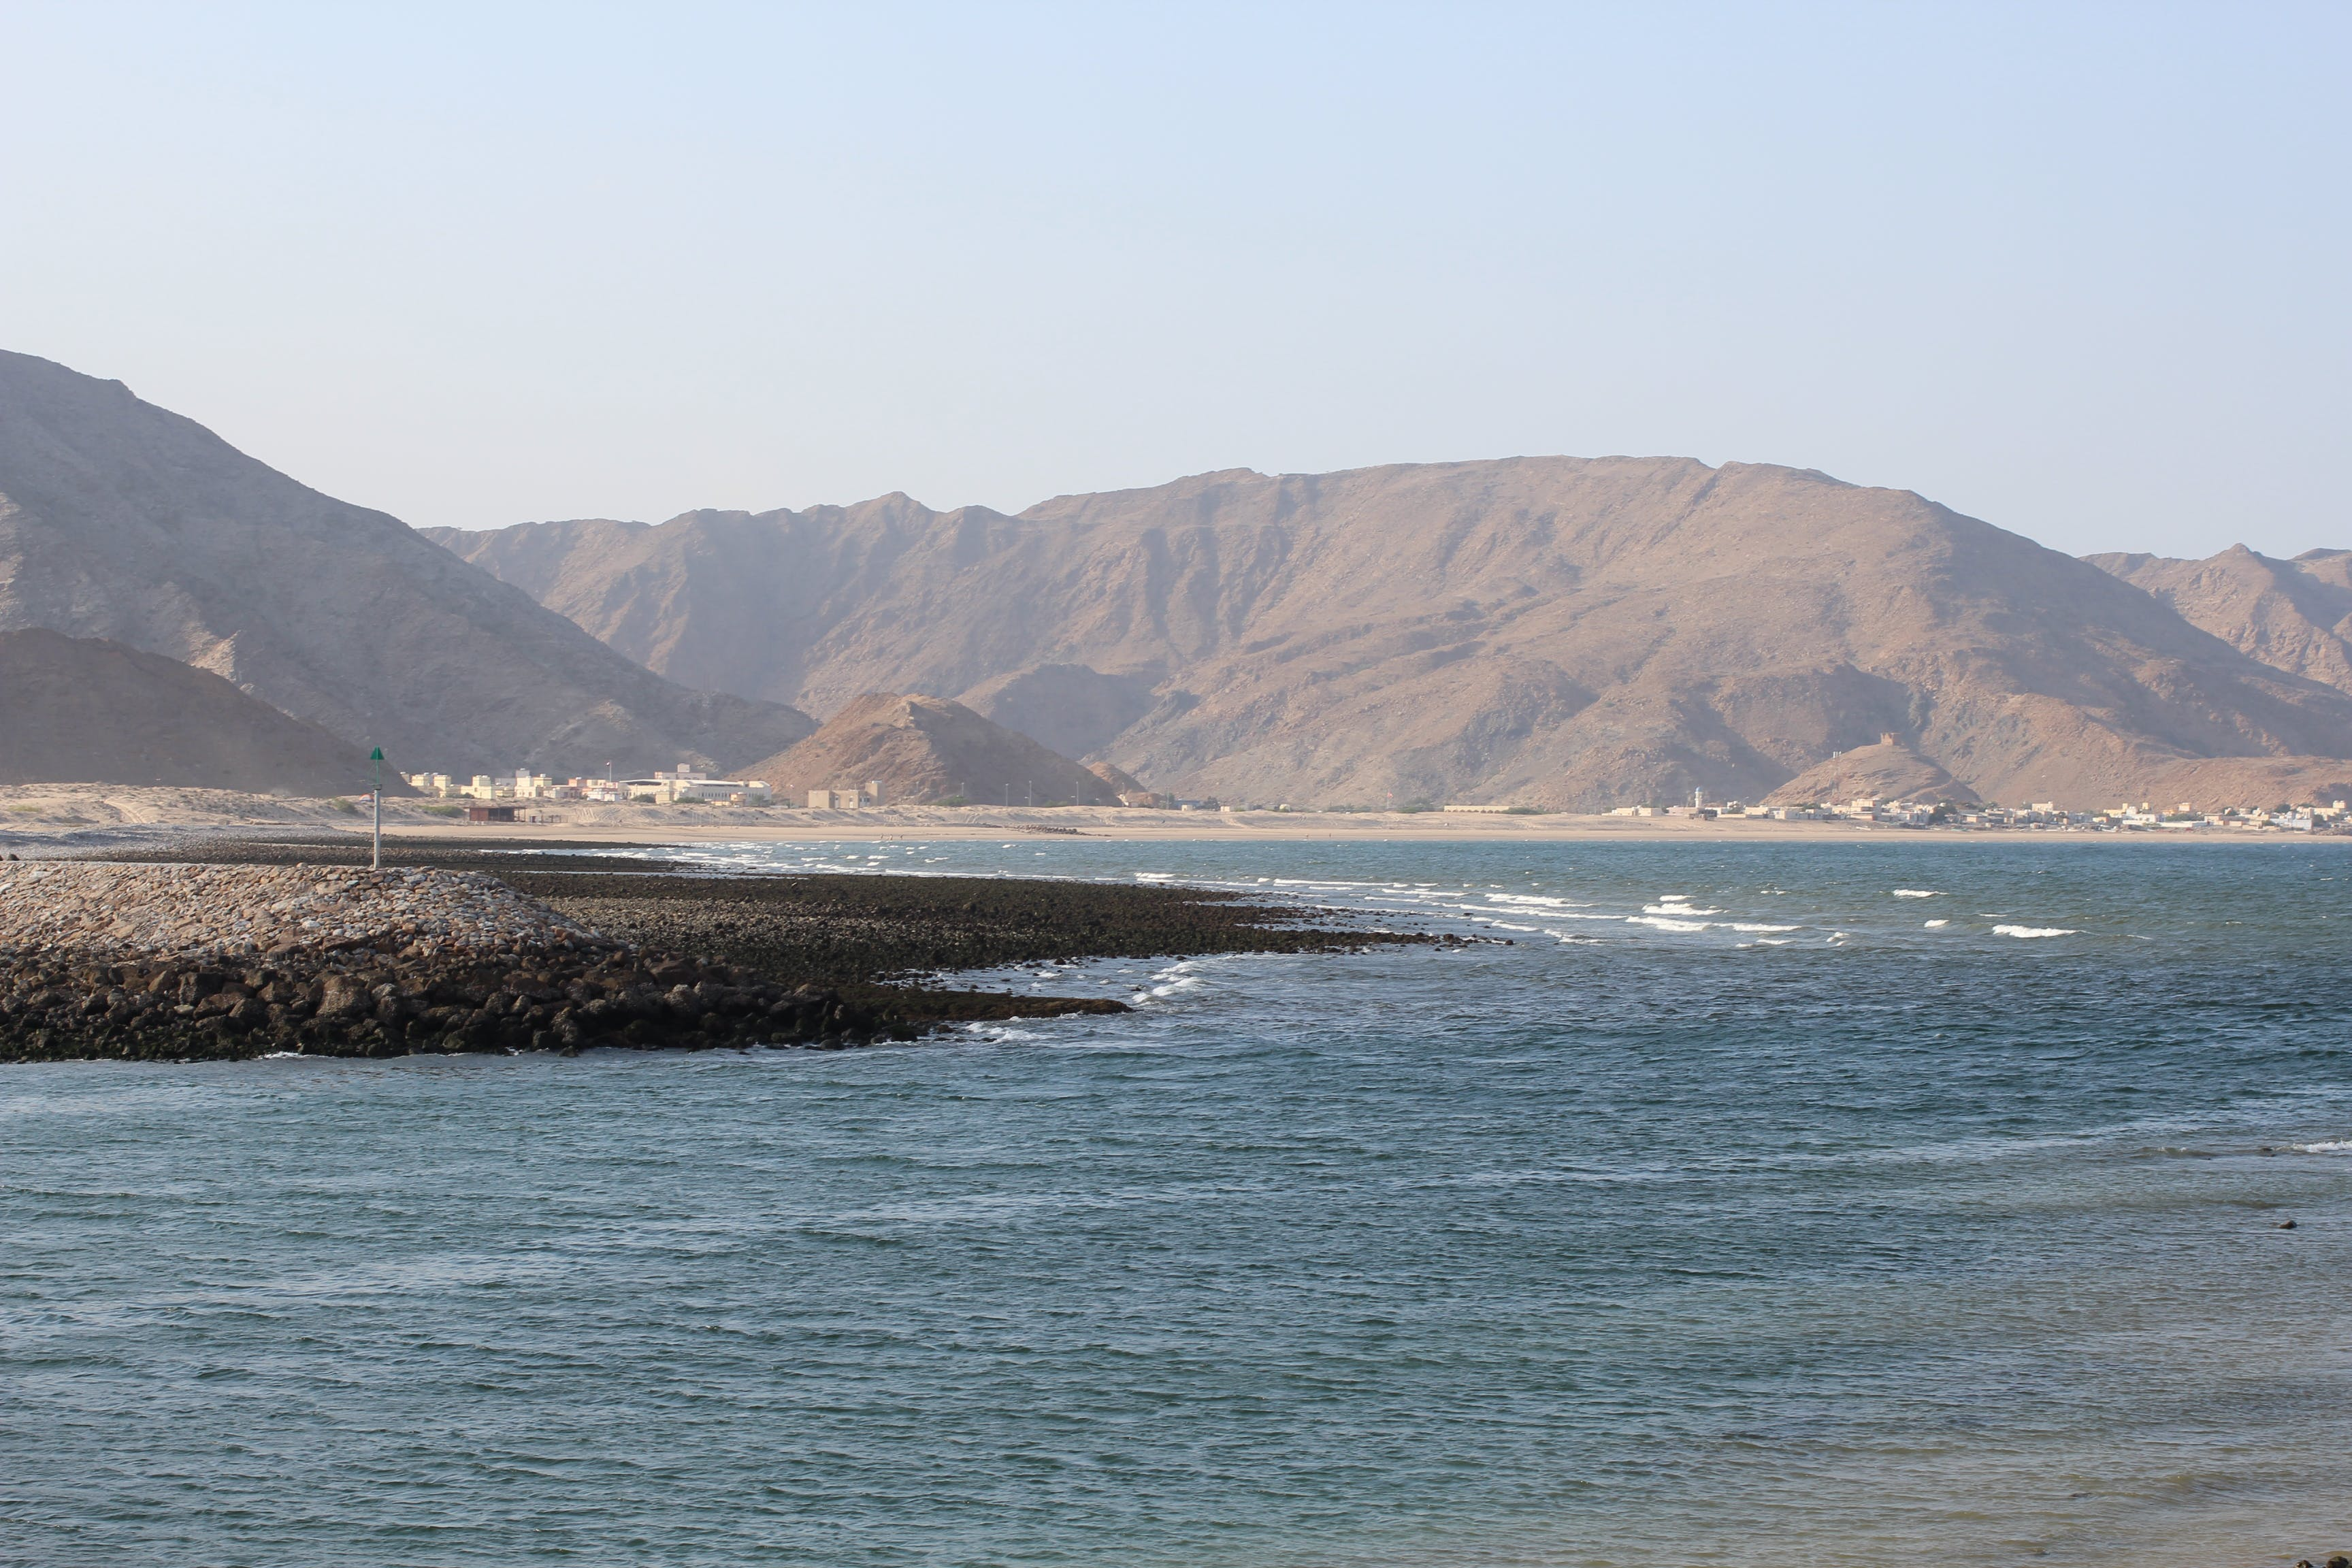 Free stock photo of beach, Jebel Sifa, maountain, ocean